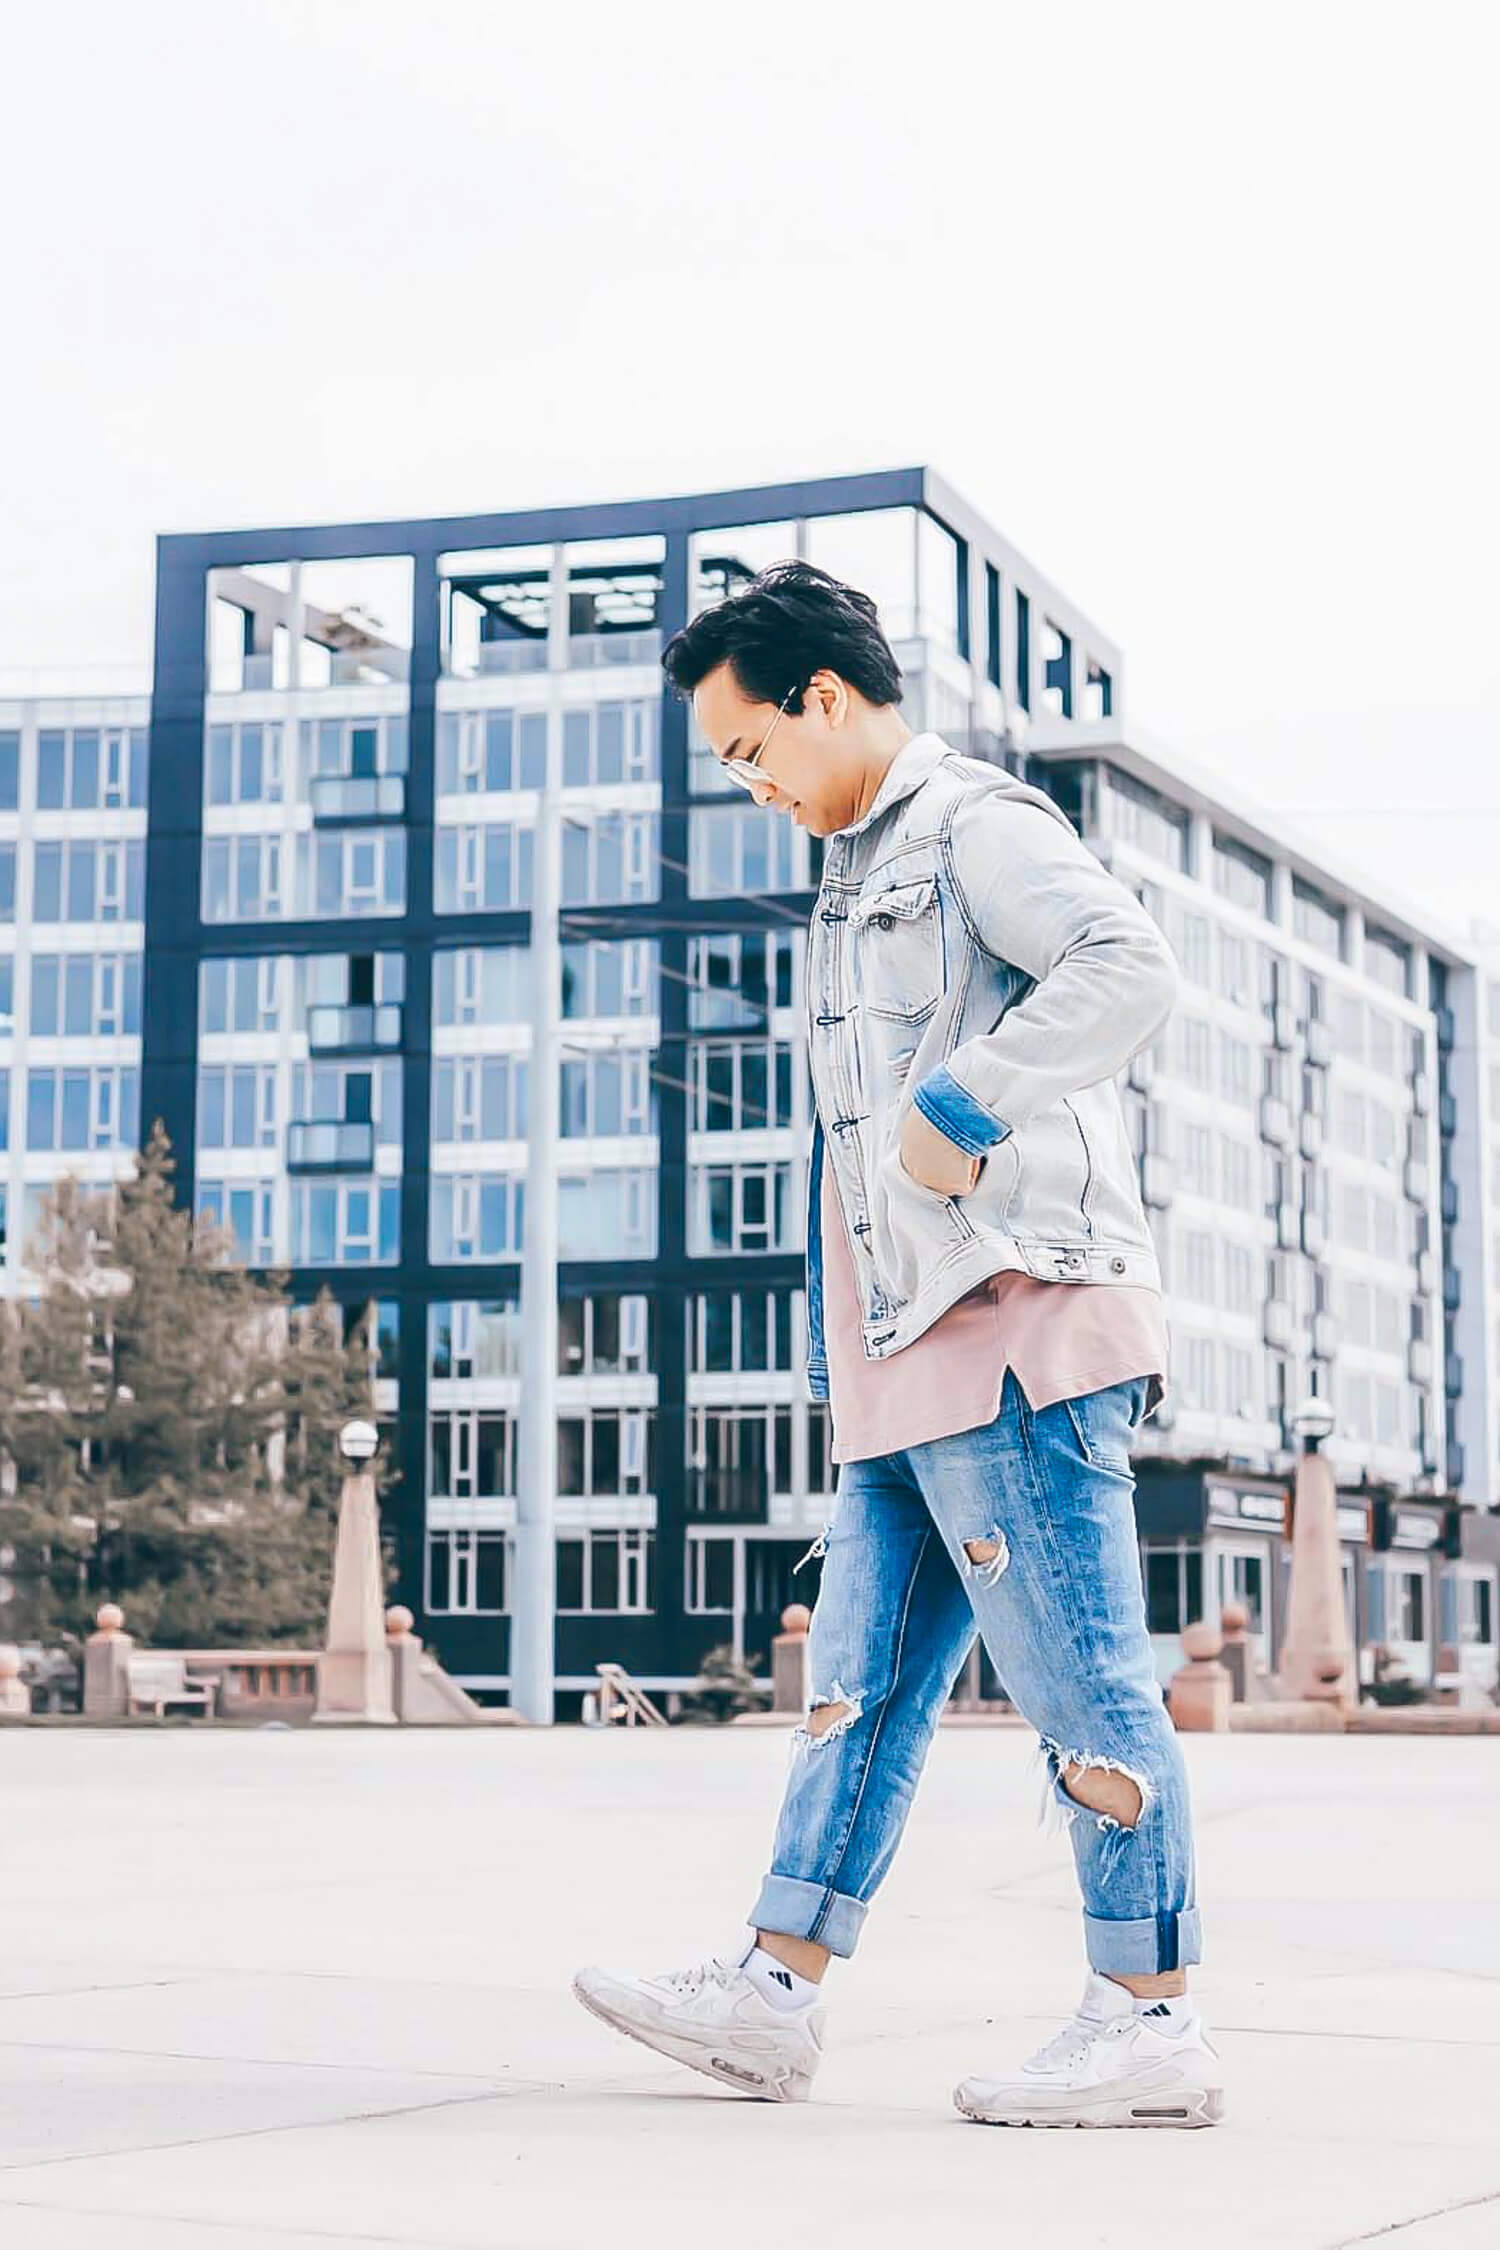 Side view of a person walking in a city park with their hands in their pocket.